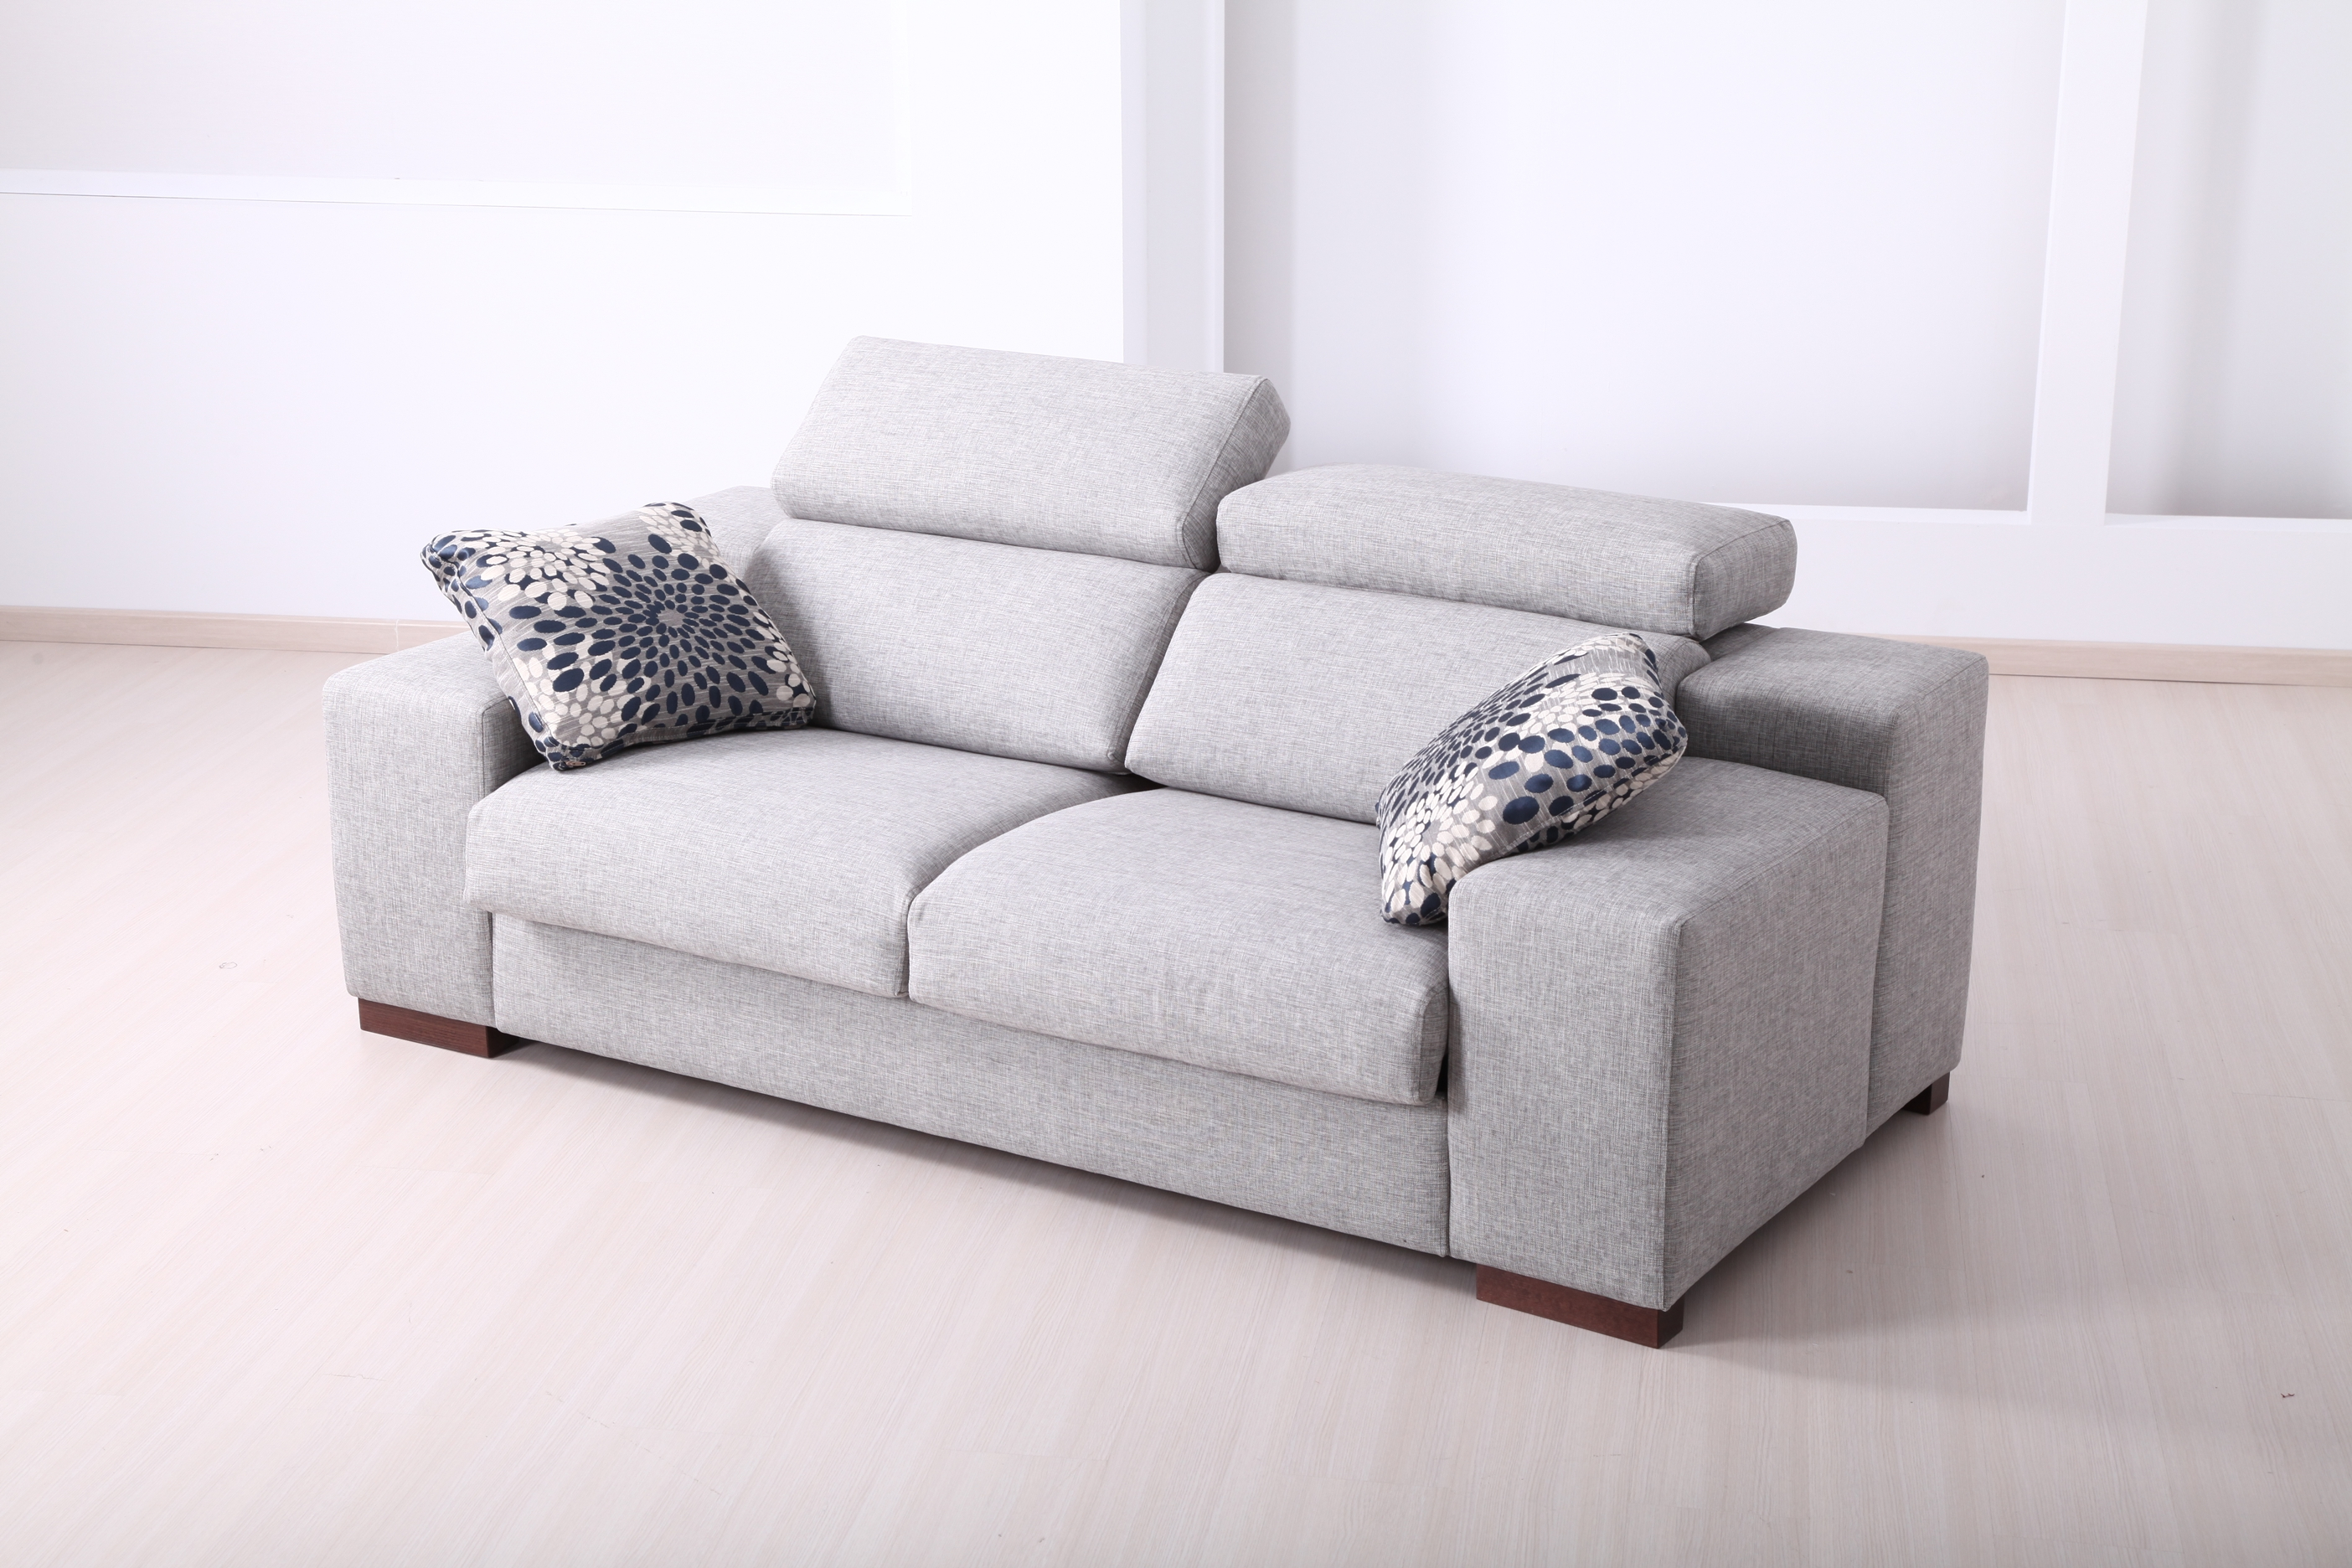 Tapicer a muebles andaluc a for Tapiceria muebles